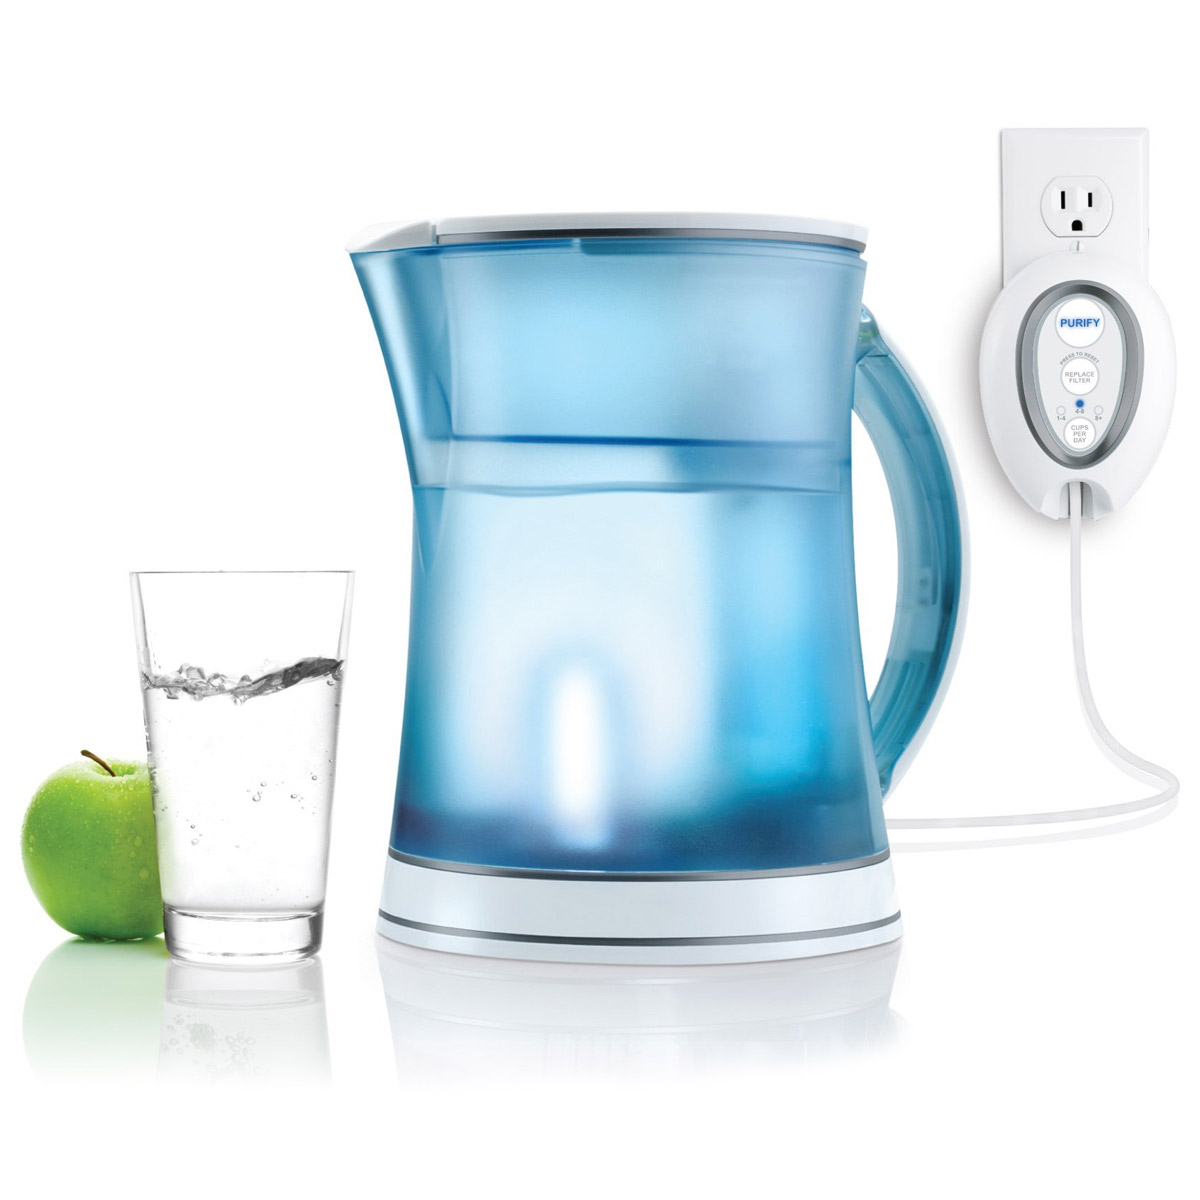 Puriteam offers great deals on Water Filtration Systems and Whole House Water Filters. You've come to the right place for high performance water and air filters! Not